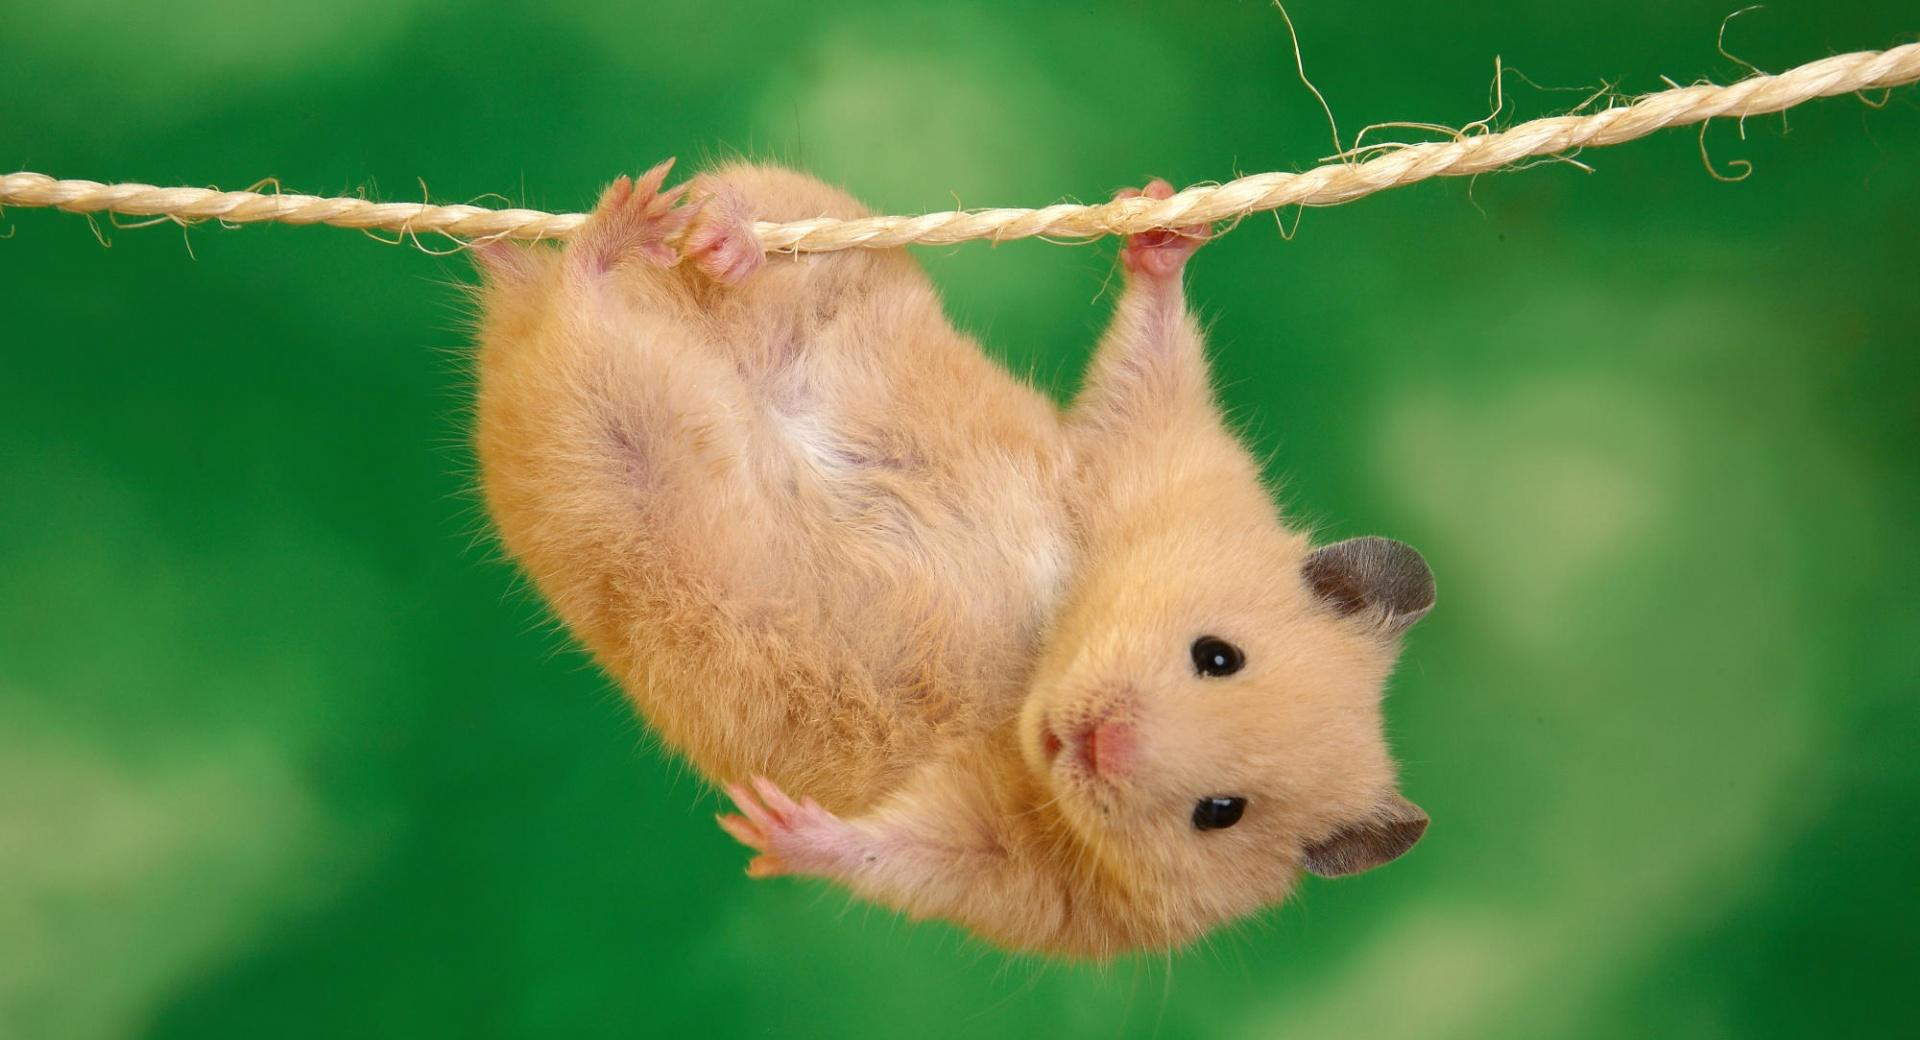 Funny Hamster wallpapers HD quality